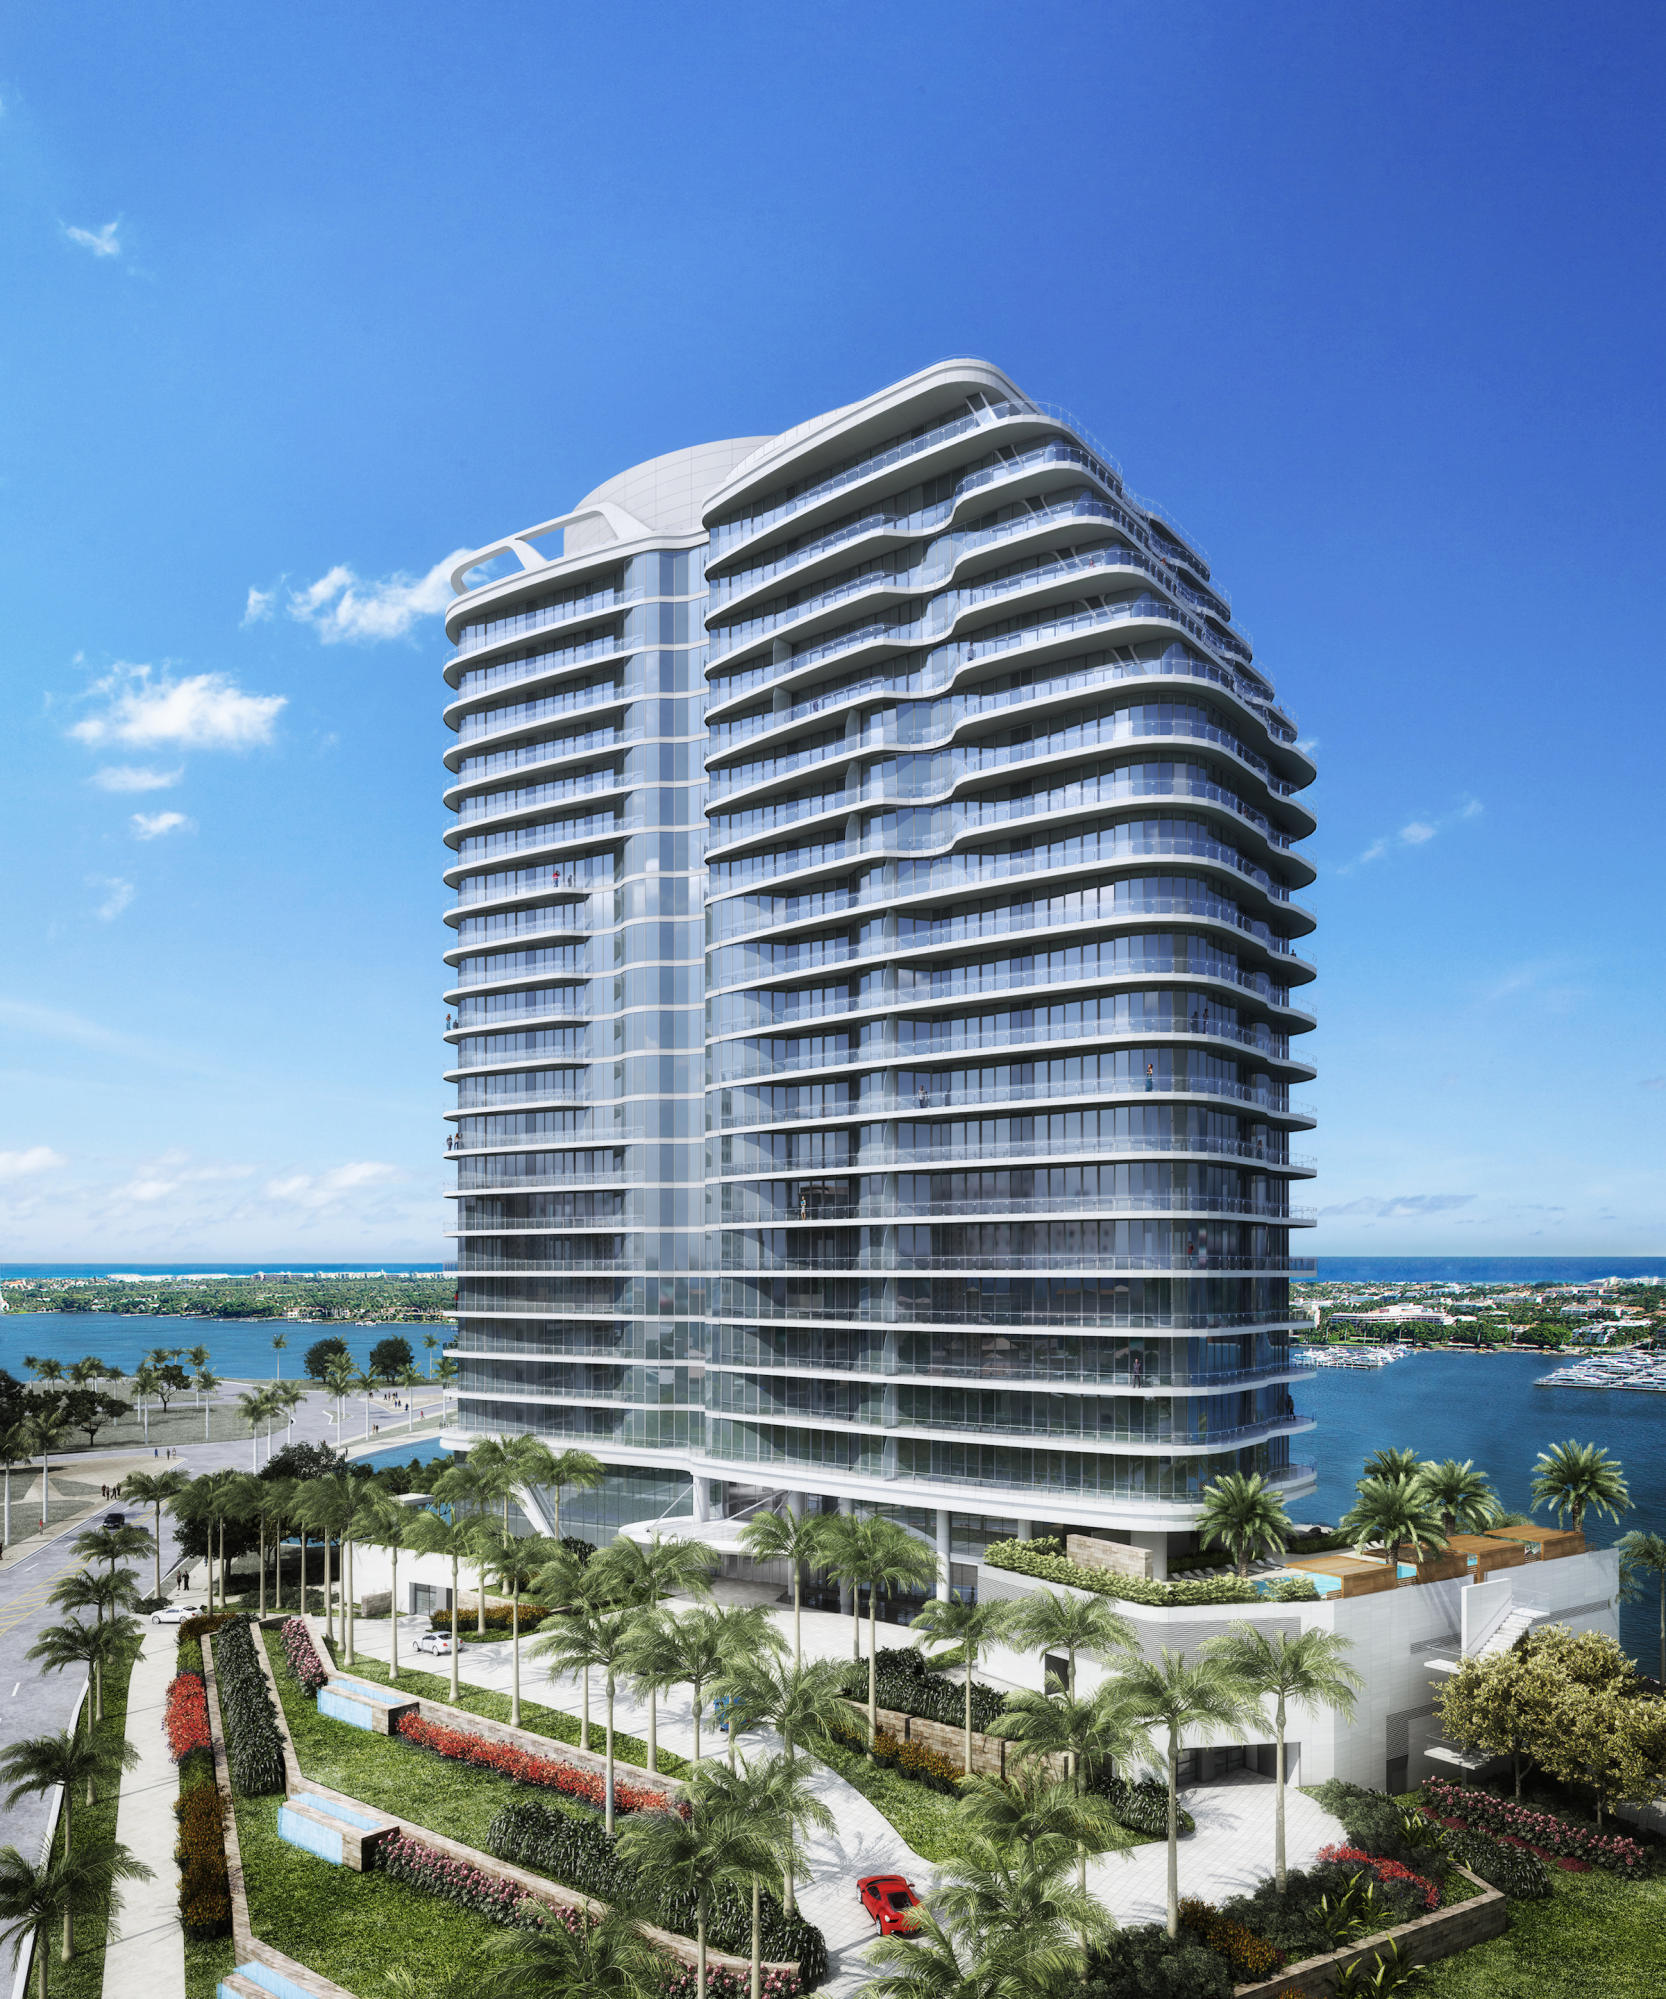 West Palm Beach, Florida 33401, 3 Bedrooms Bedrooms, ,4 BathroomsBathrooms,Residential,For Sale,Flagler,RX-10321143